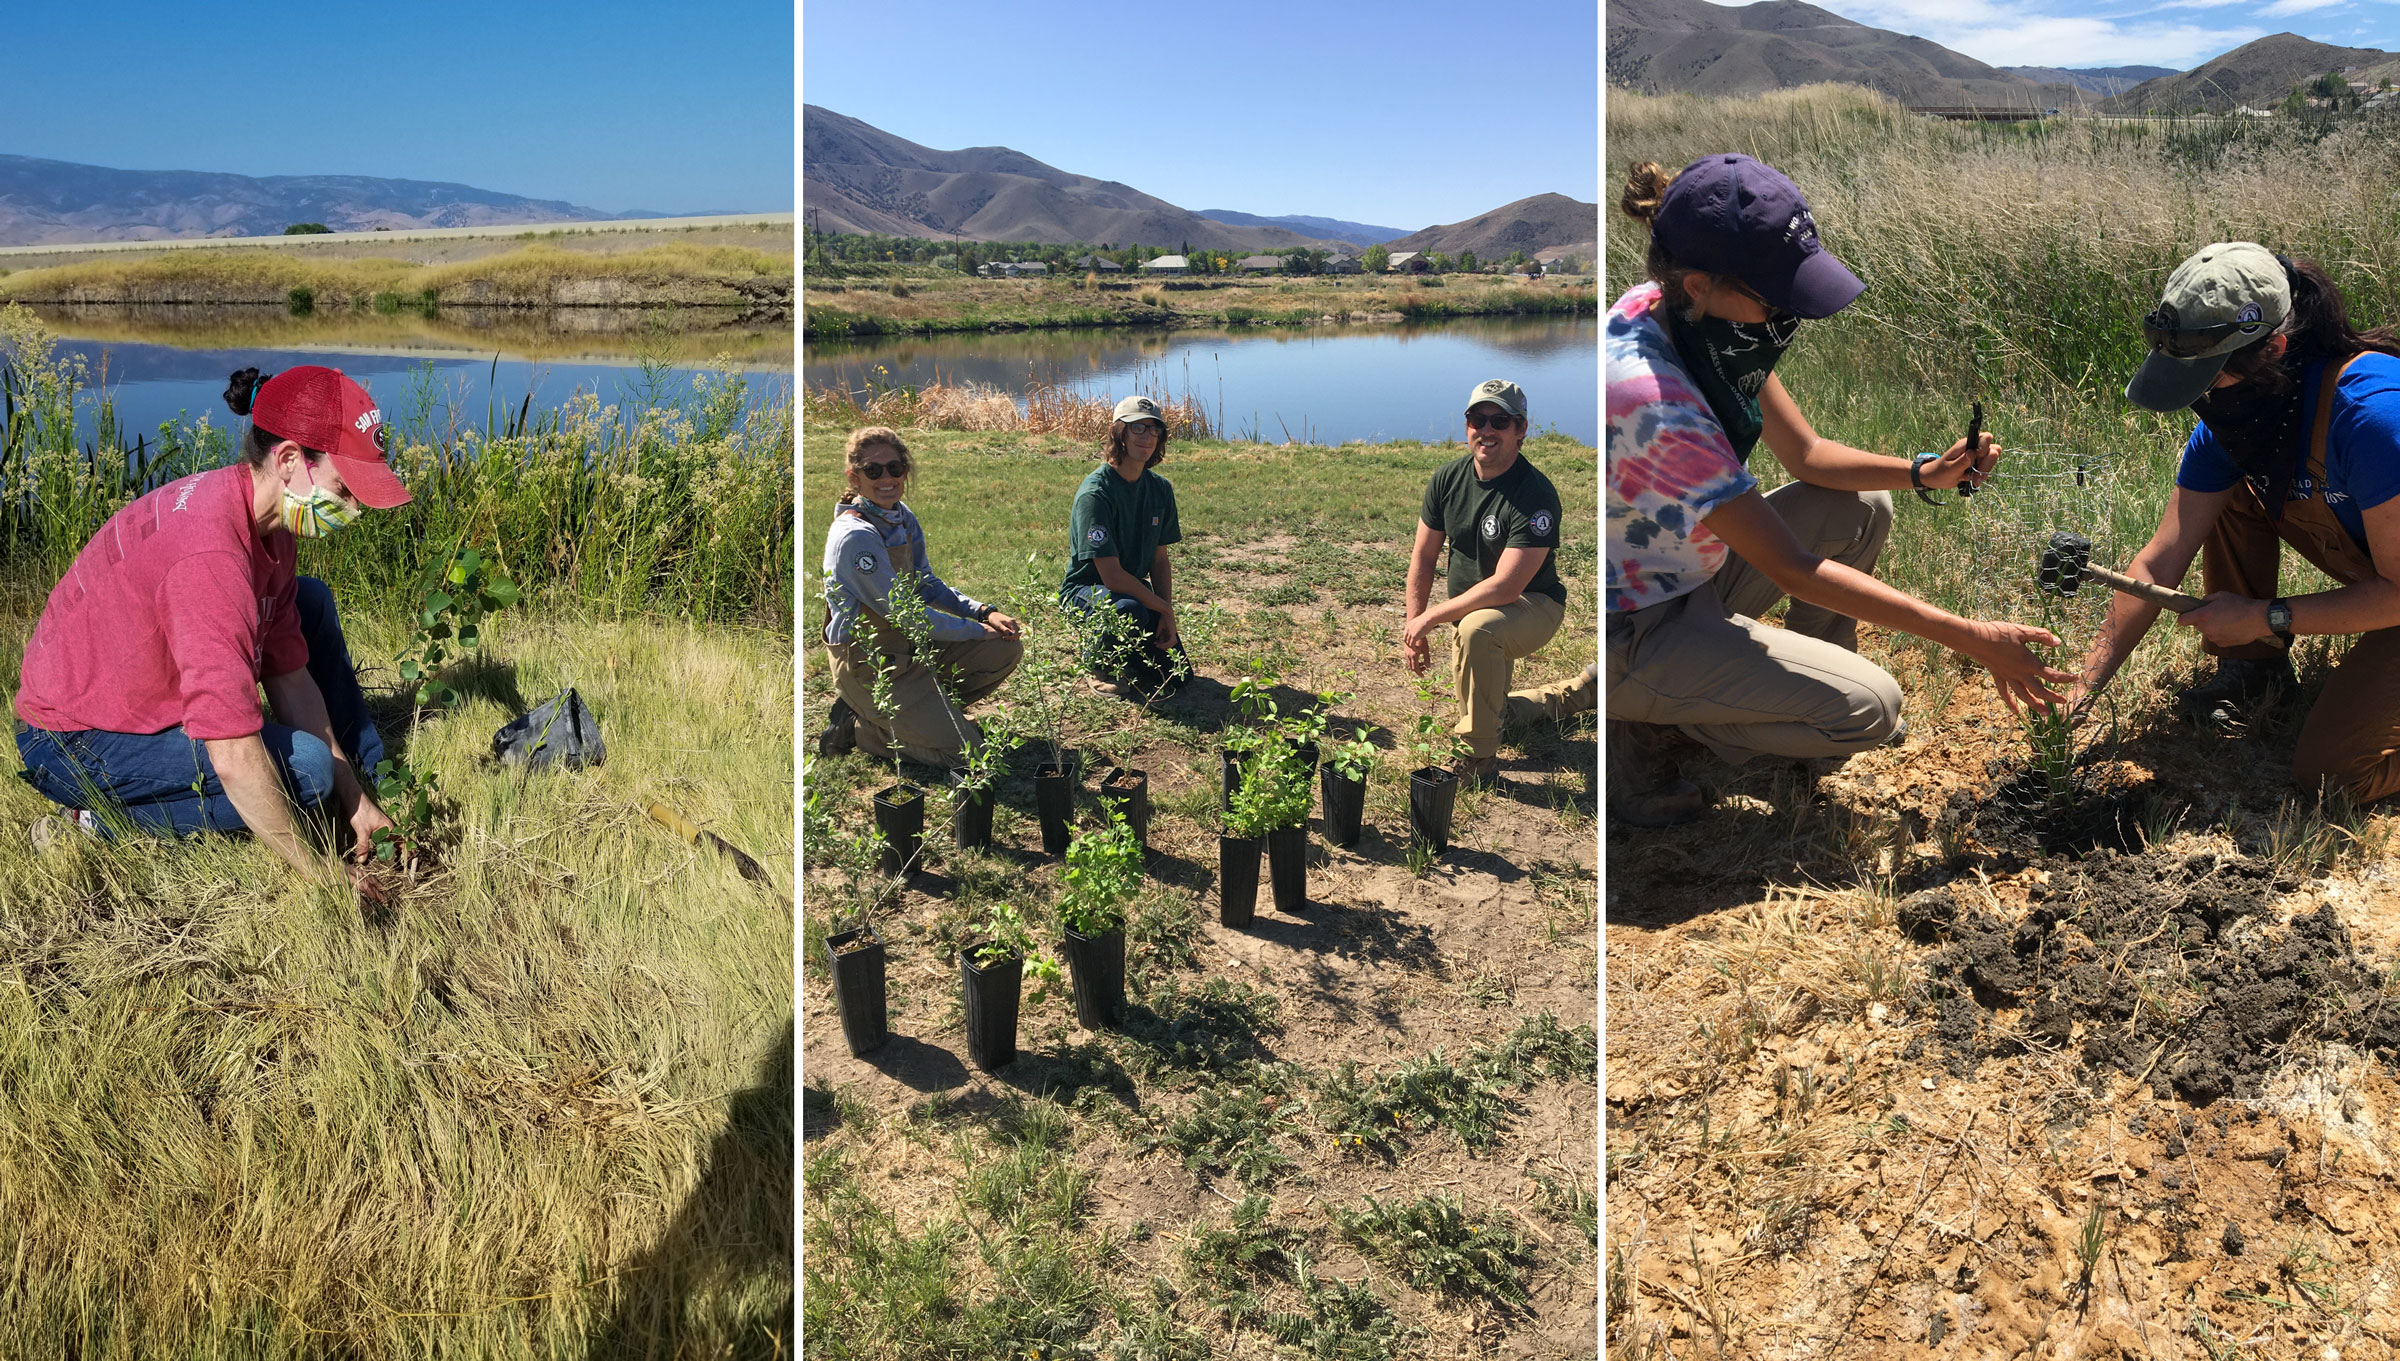 Truckee Meadows Parks Foundation, in partnership with Lahontan Audubon Society and AmeriCorps, plant native species in Truckee Meadows Nature Study Area in Reno, Nevada. Courtesy of Truckee Meadows Parks Foundation